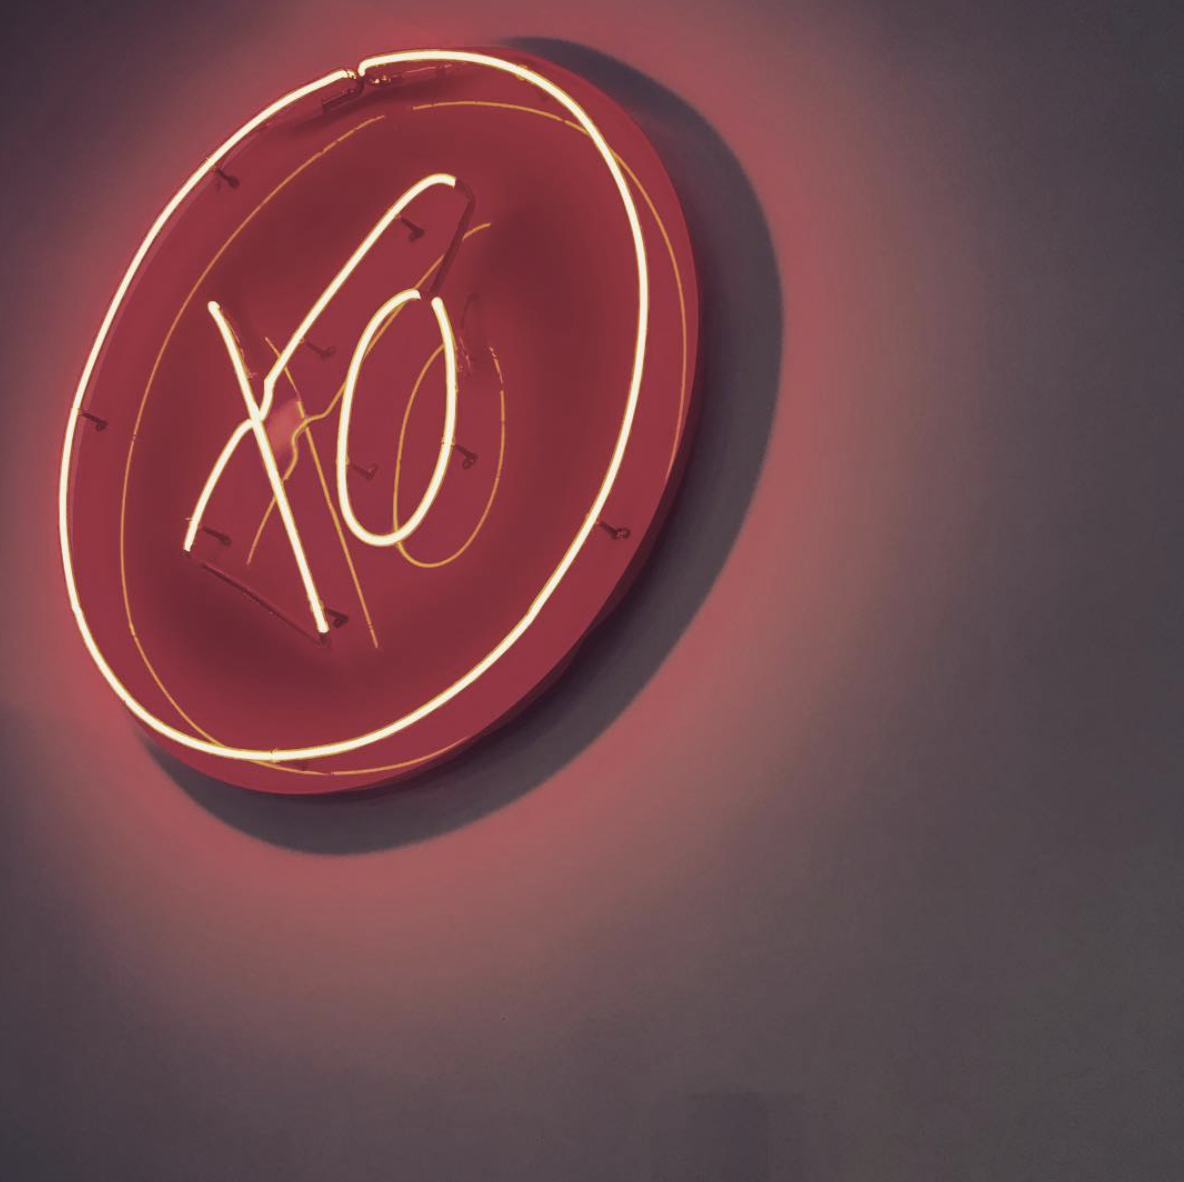 Public relations for Calgary's XO Treatment Room